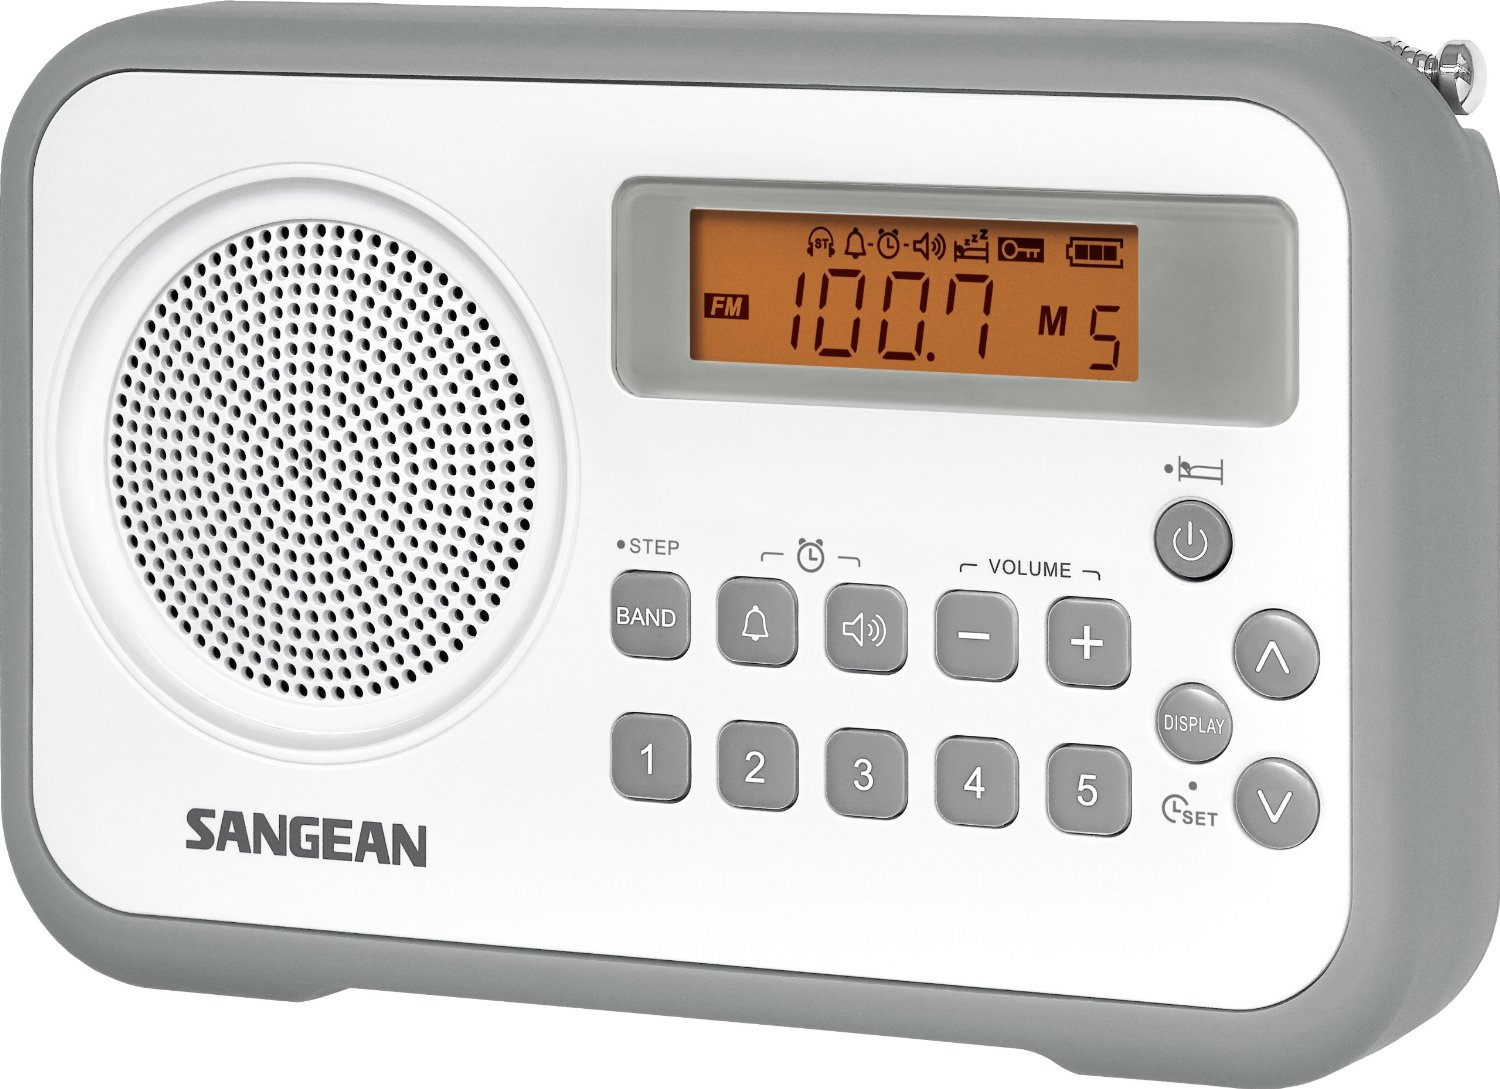 Sangean Pr D18 Dsp Am Fm Digital Portable Radio Radiojayallen Low Cost Gr White Gray